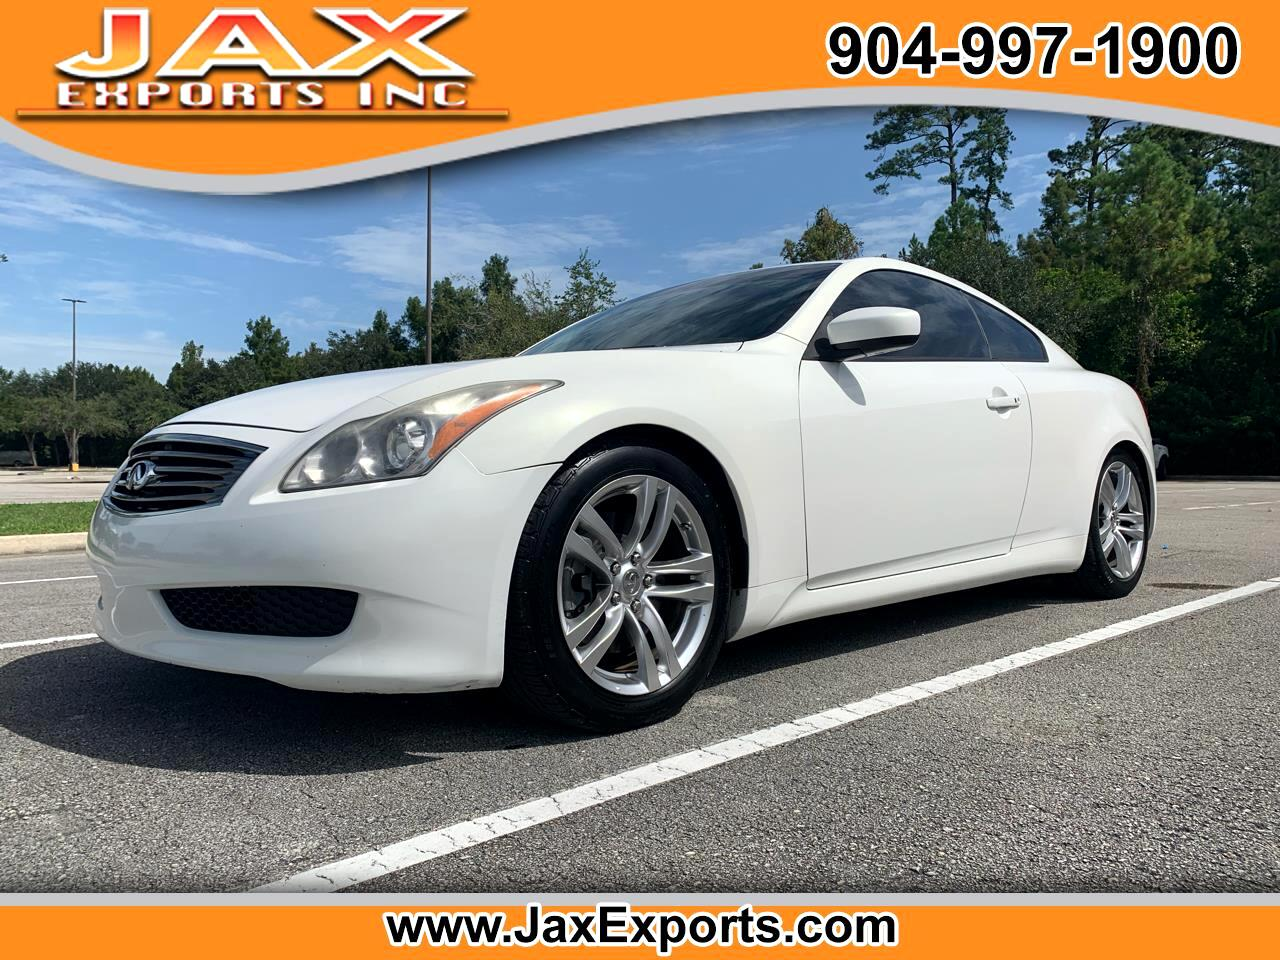 2009 Infiniti G37 Coupe 2dr Journey RWD